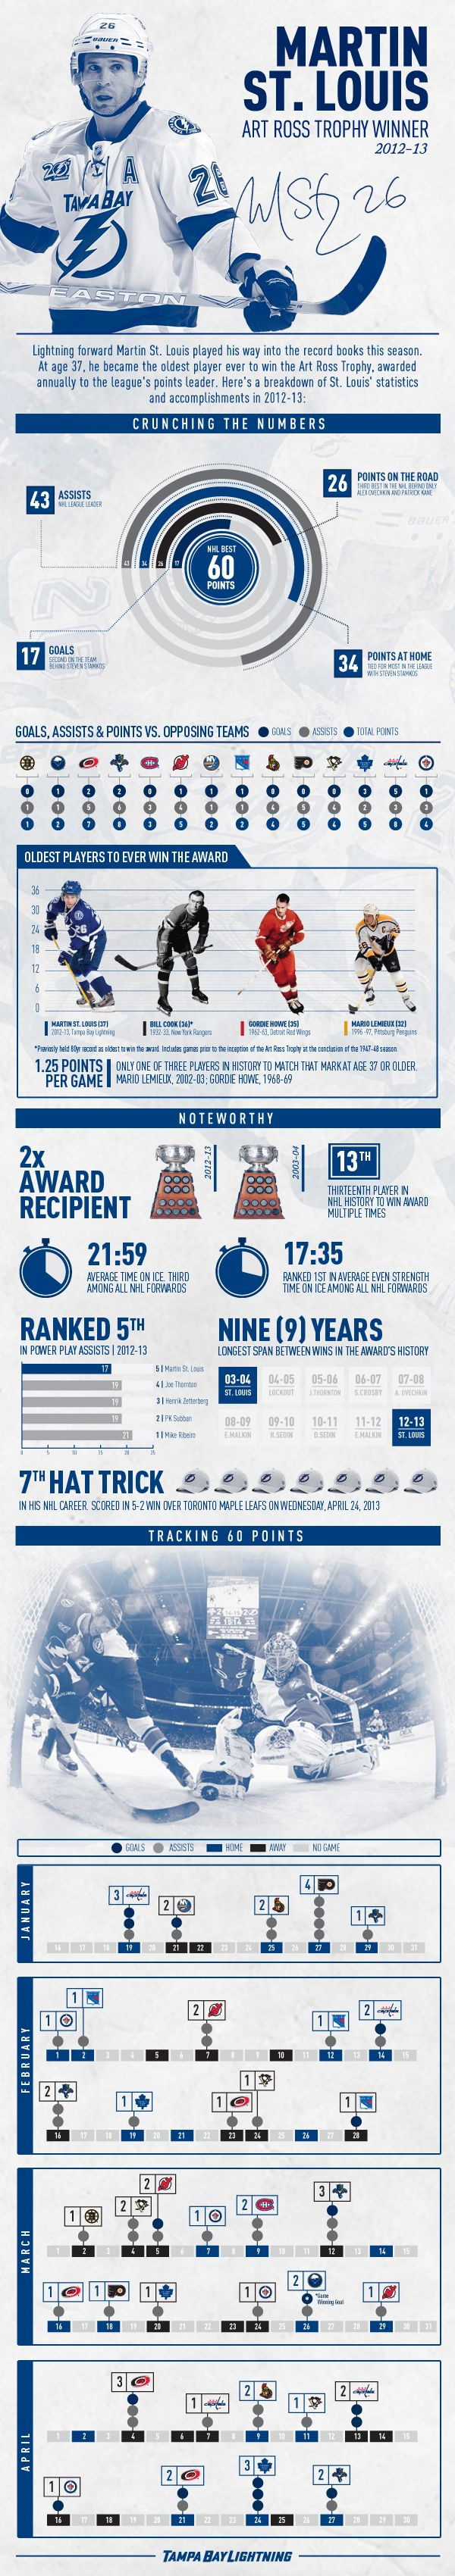 Infographic: Breakdown and historical significance of Tampa Bay Lightning Forward Martin St. Louis winning the 2012-13 Art Ross Trophy.